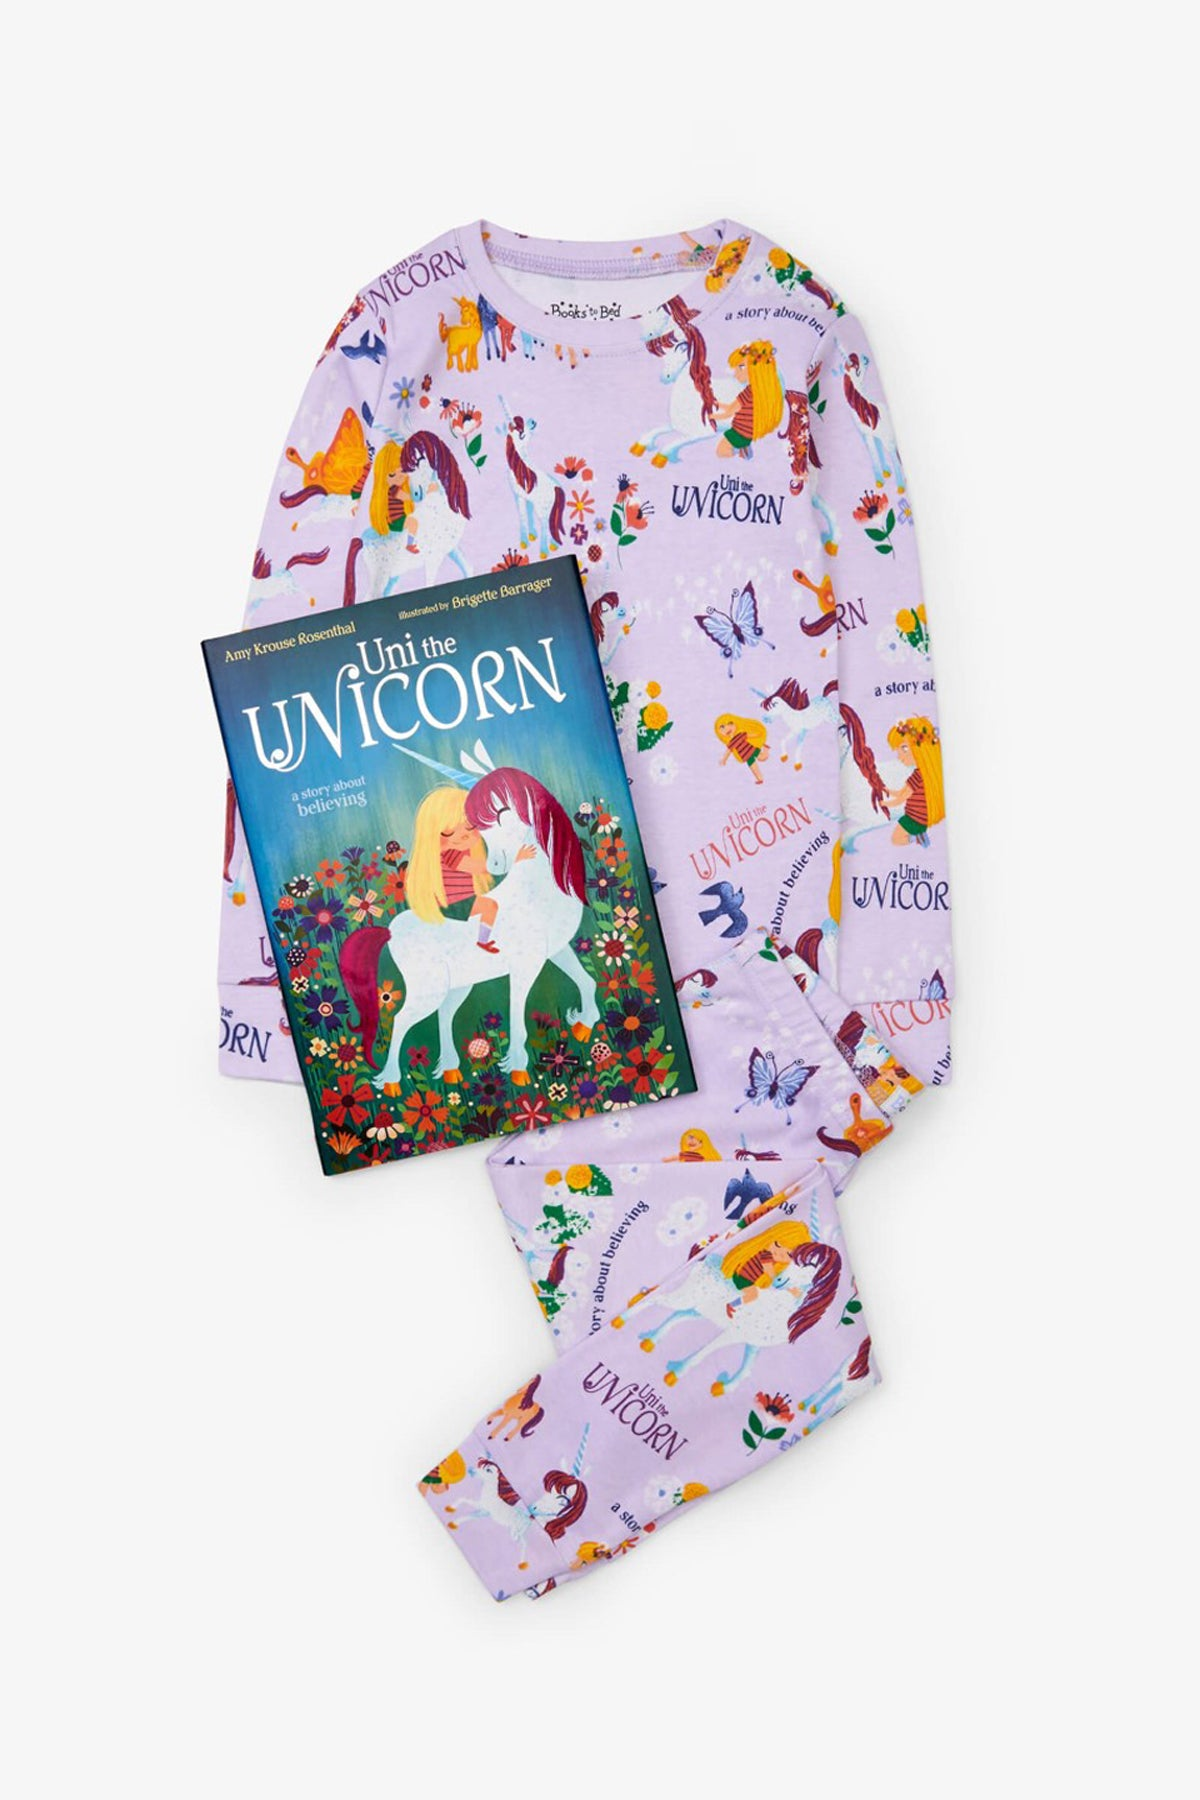 Books To Bed Uni The Unicorn Kids Pajamas and Book Set